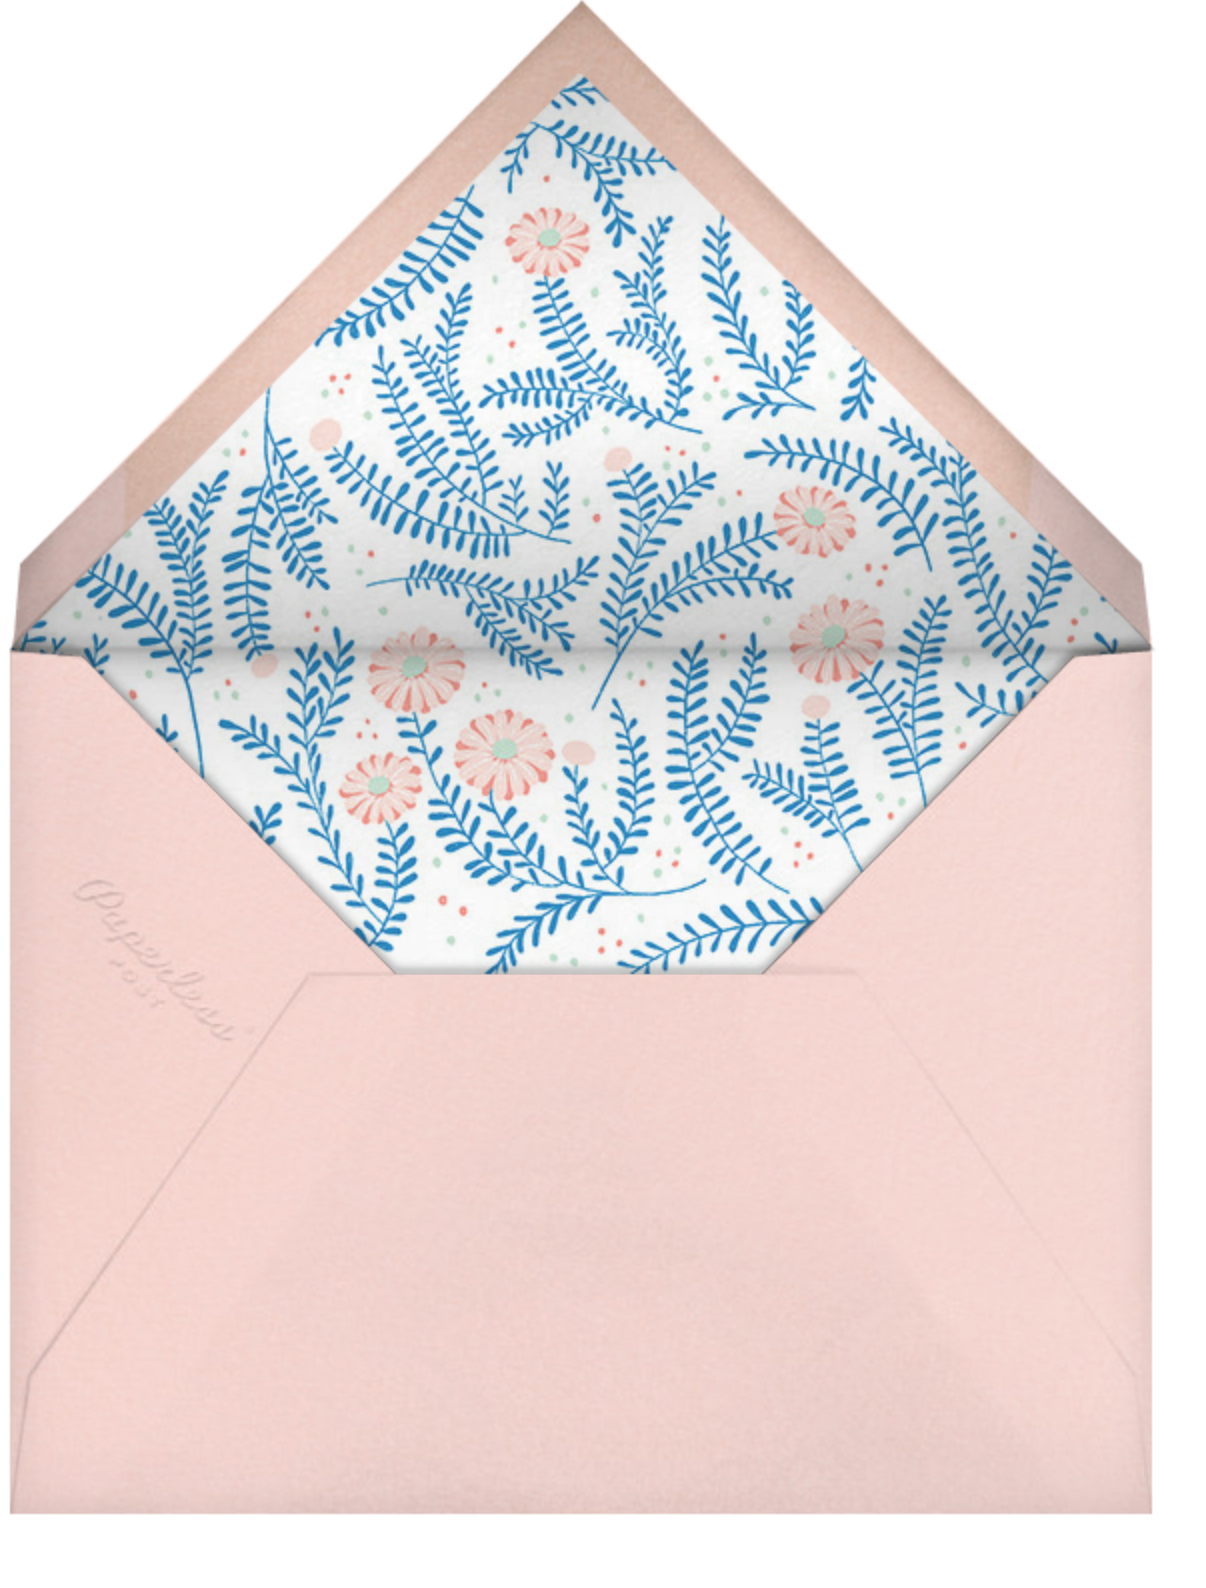 Lady Potts' Cosy - Paperless Post - Baby shower - envelope back